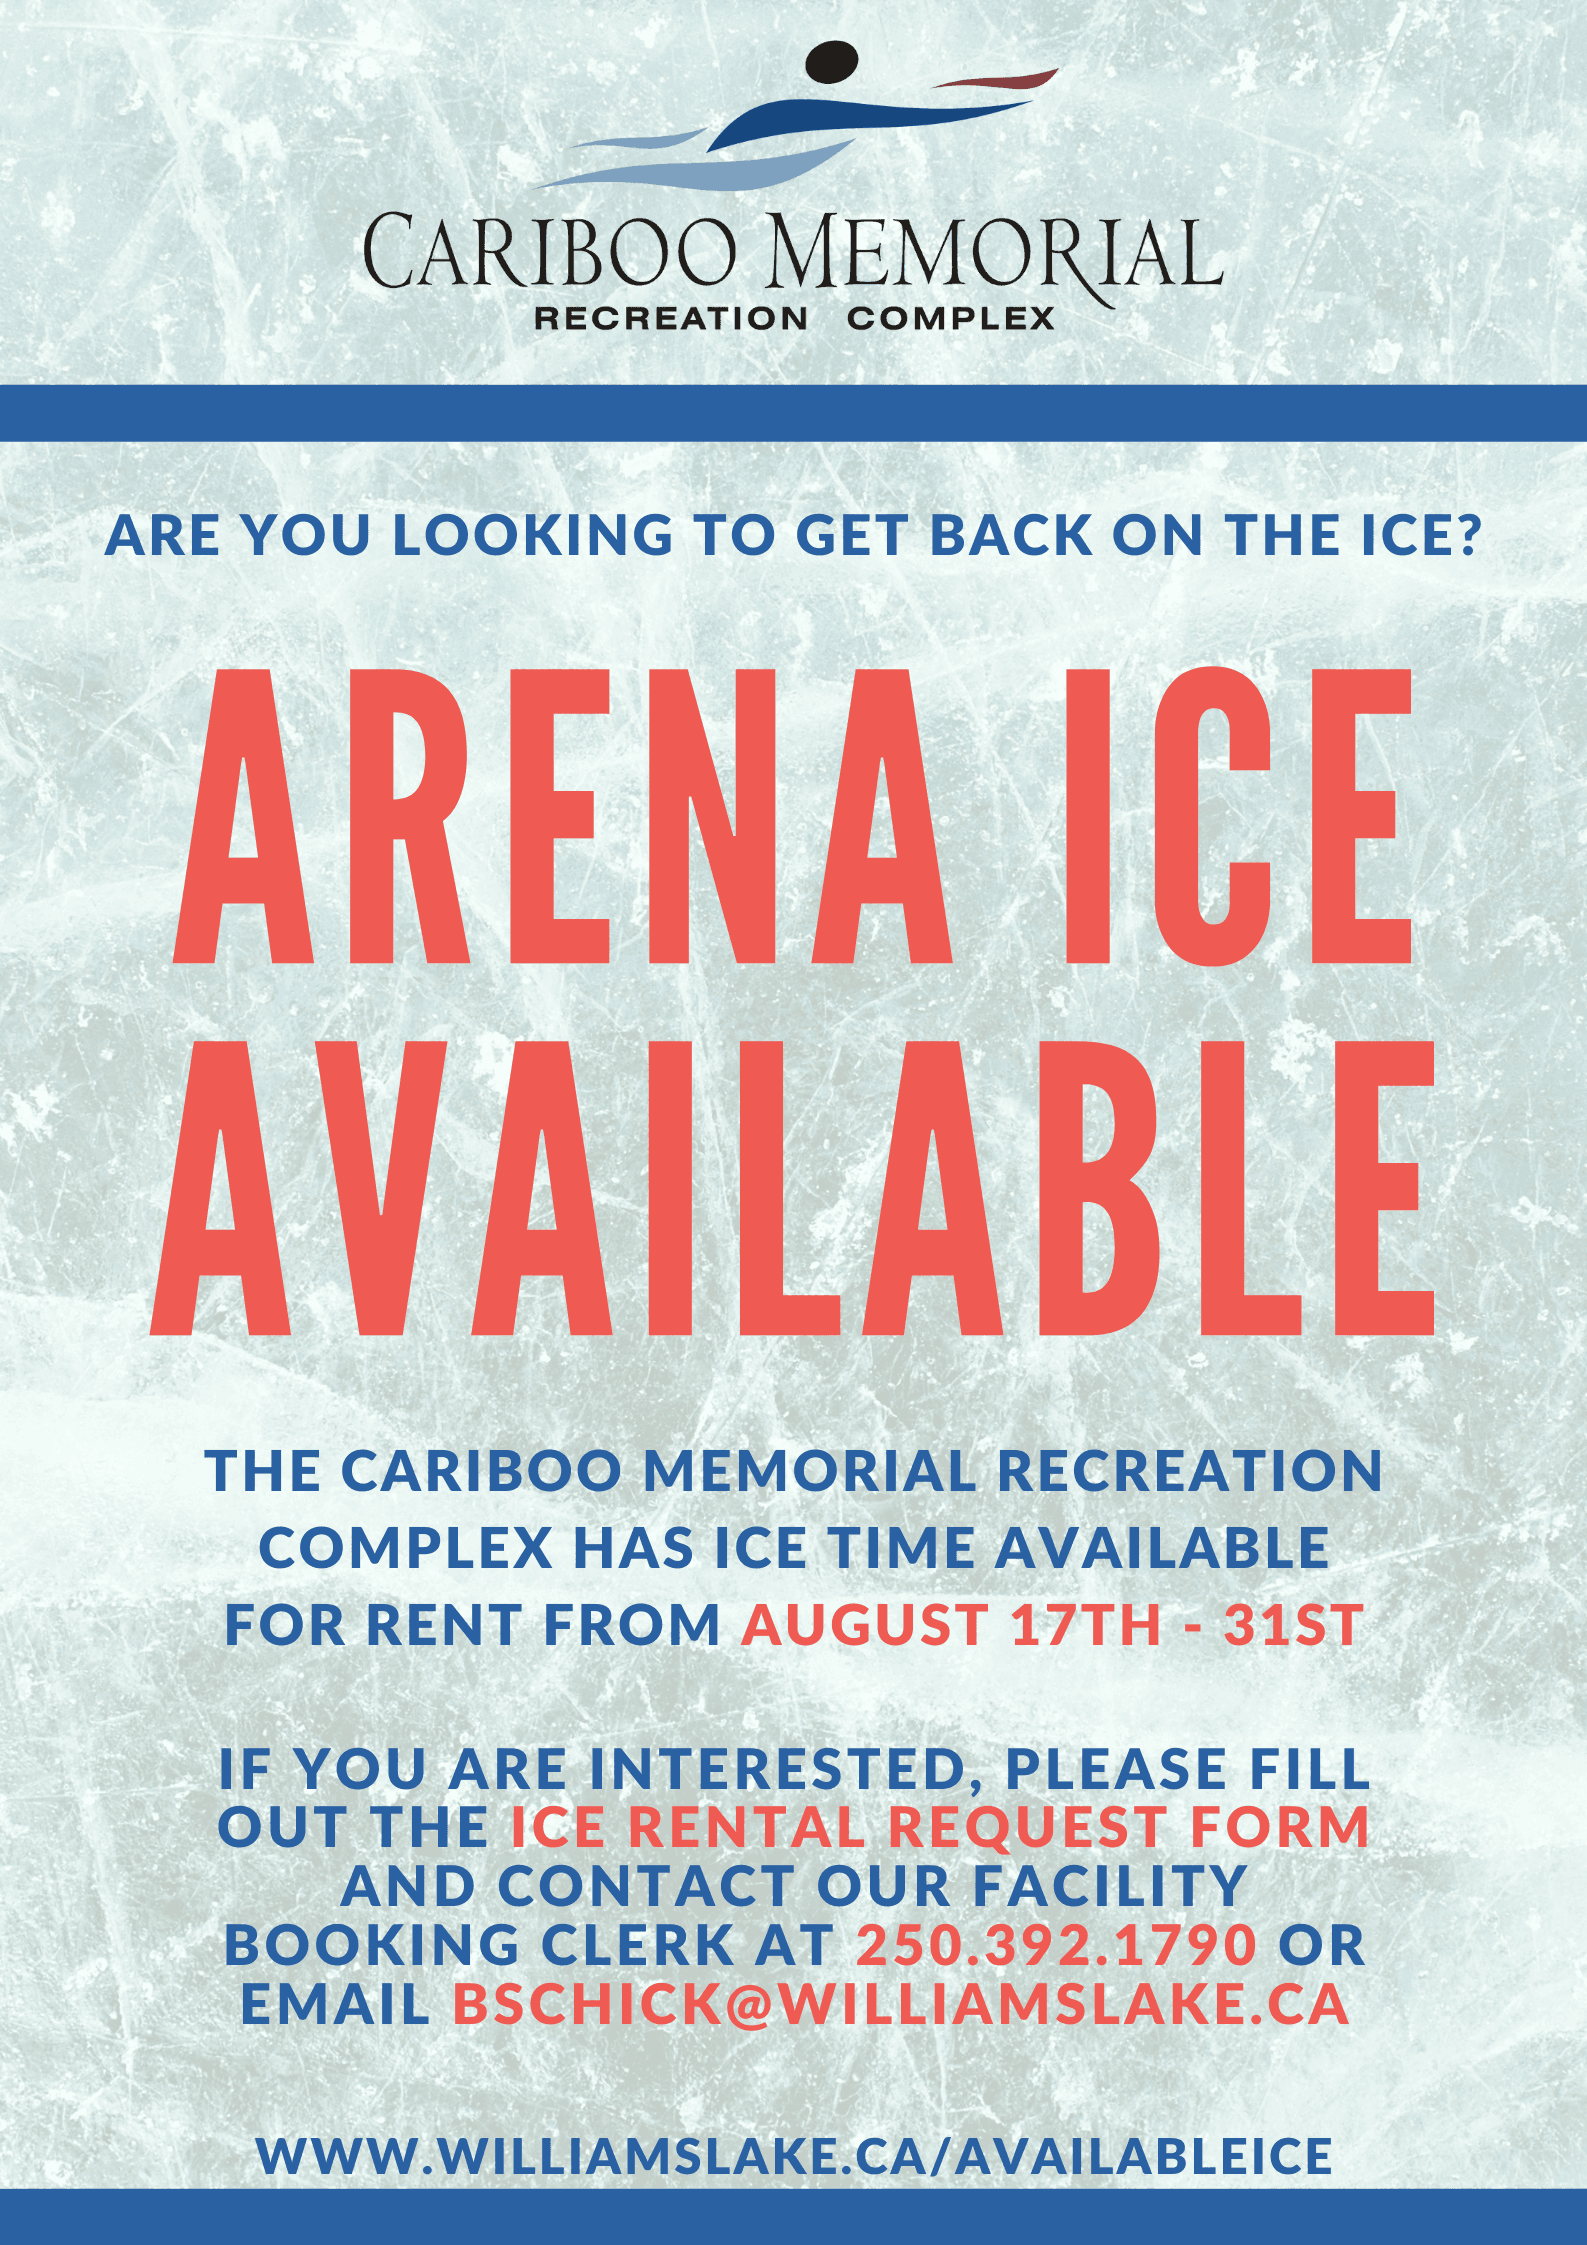 Arena Ice Available (1)